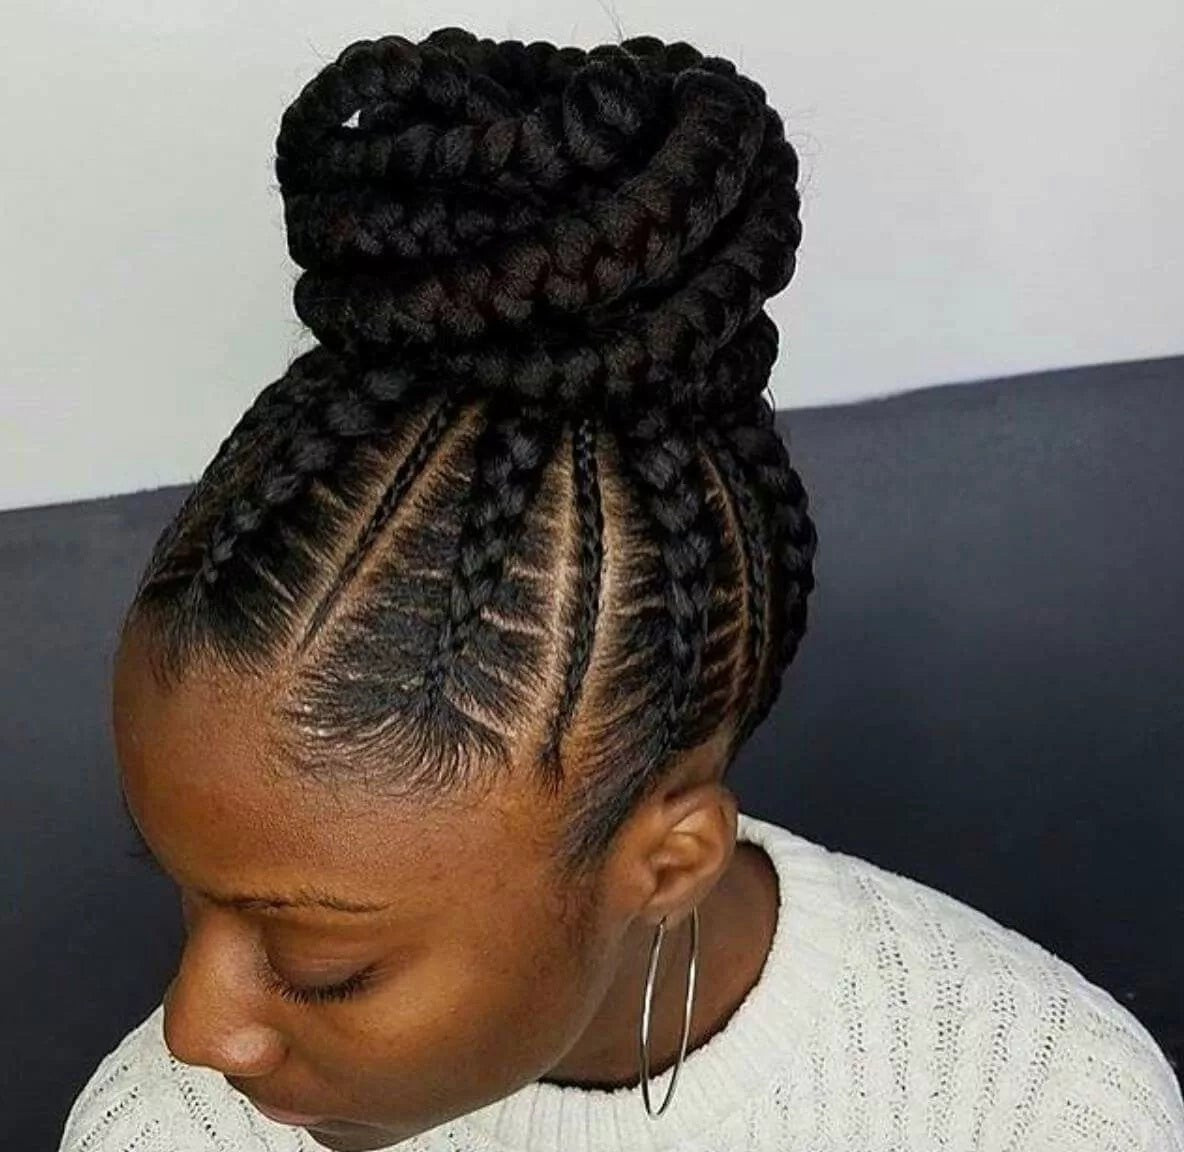 Best ideas about African Braids Hairstyles . Save or Pin Top 10 African braiding hairstyles for la s PHOTOS Now.